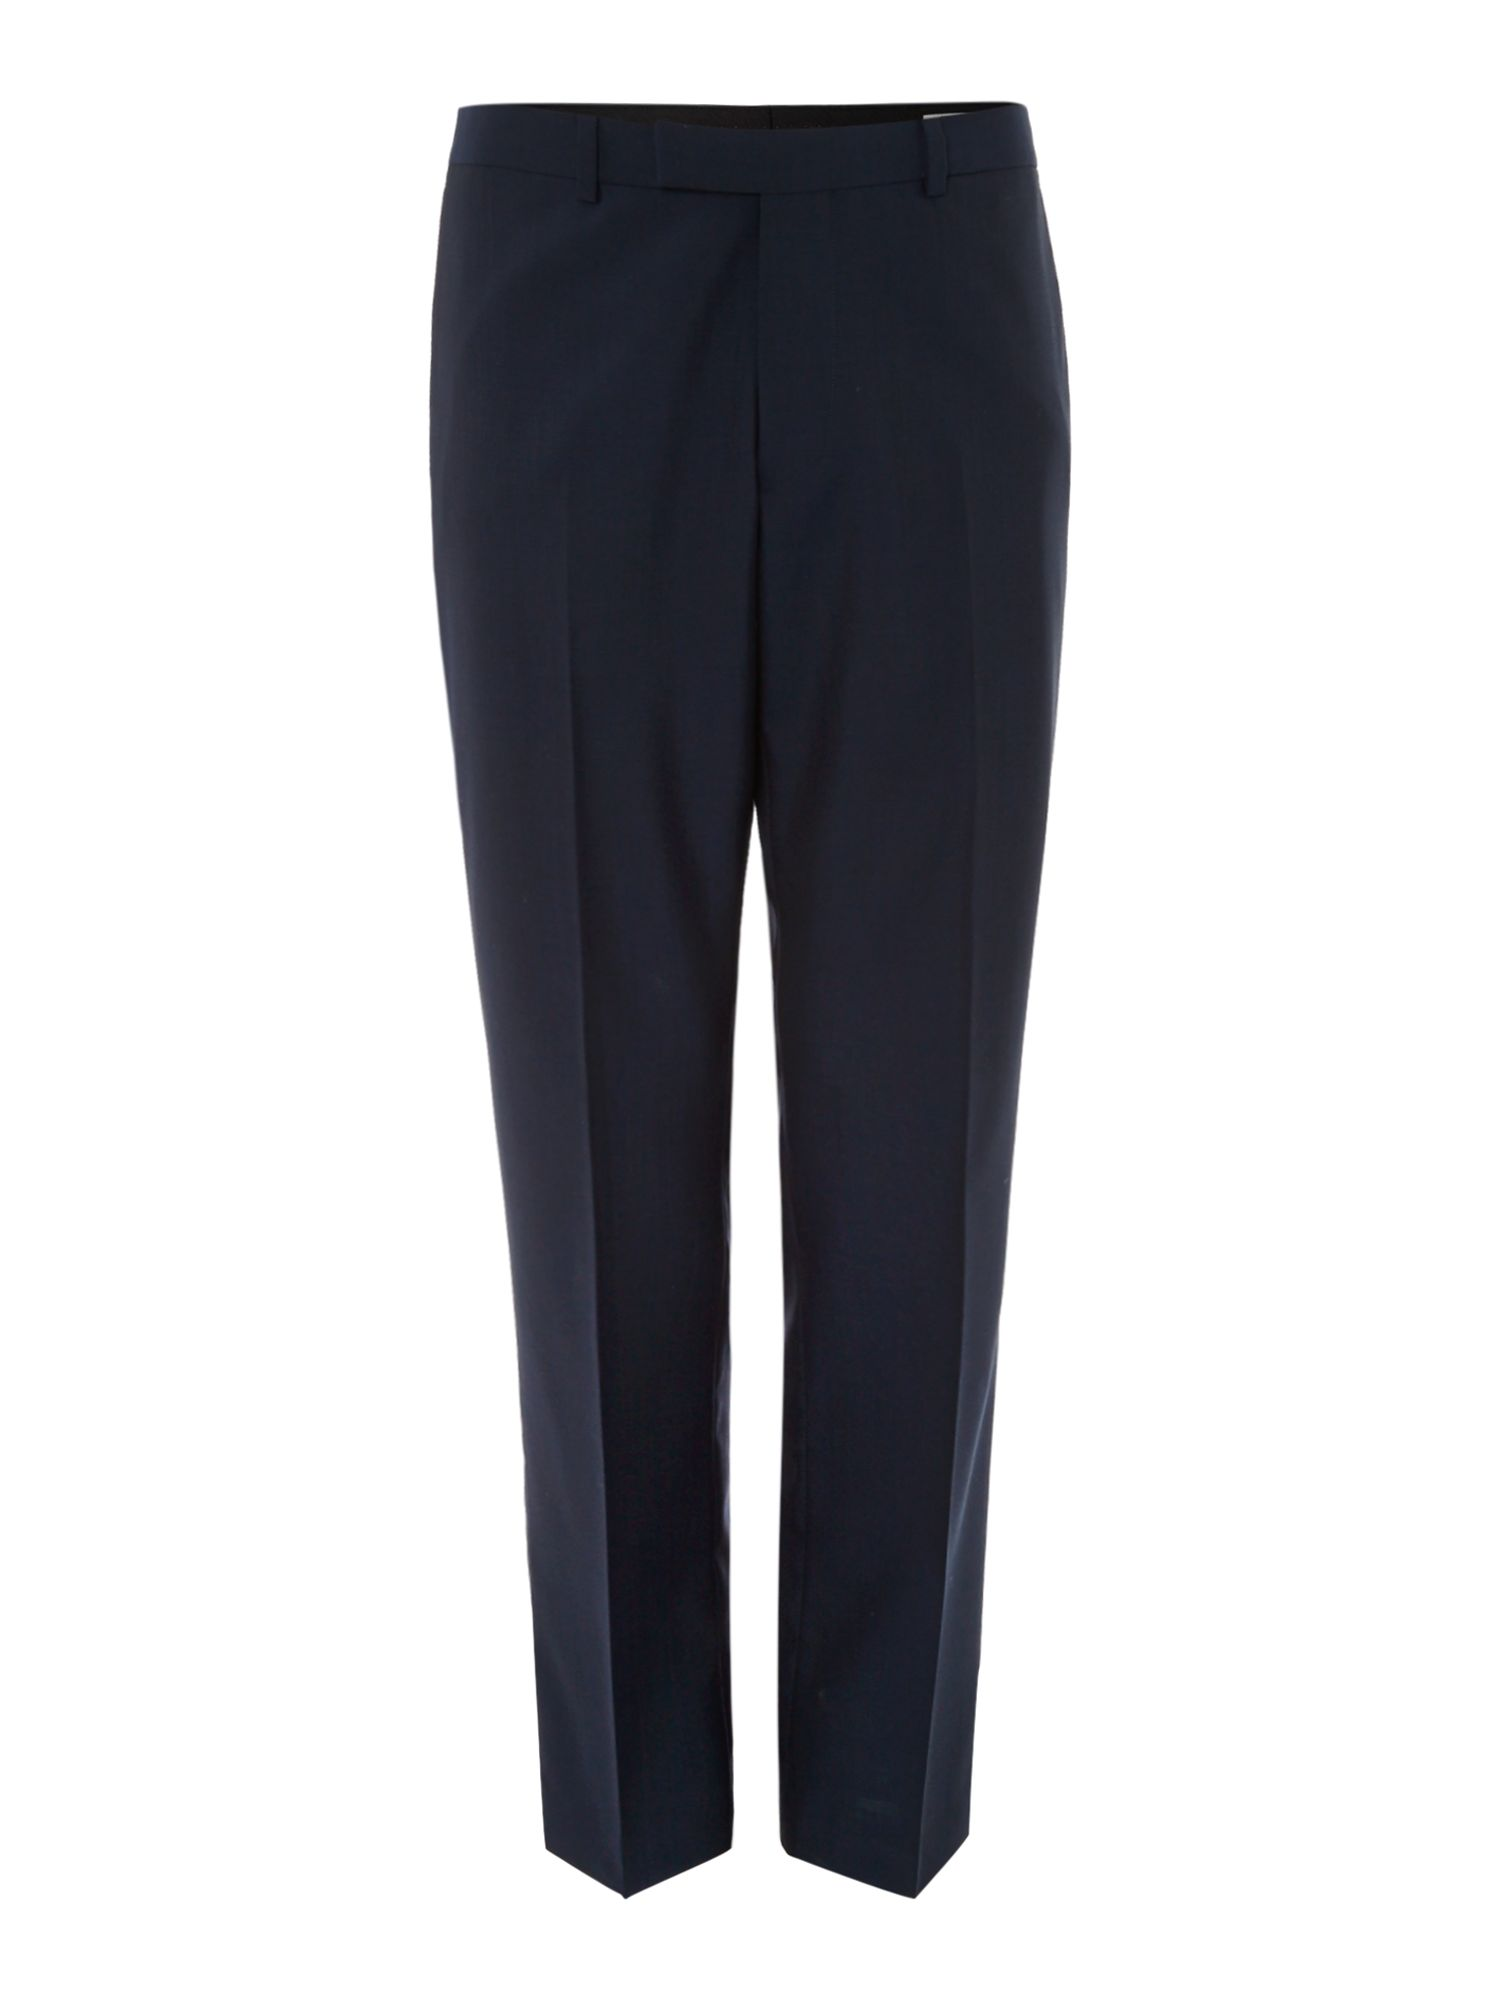 Draper panama suit trousers